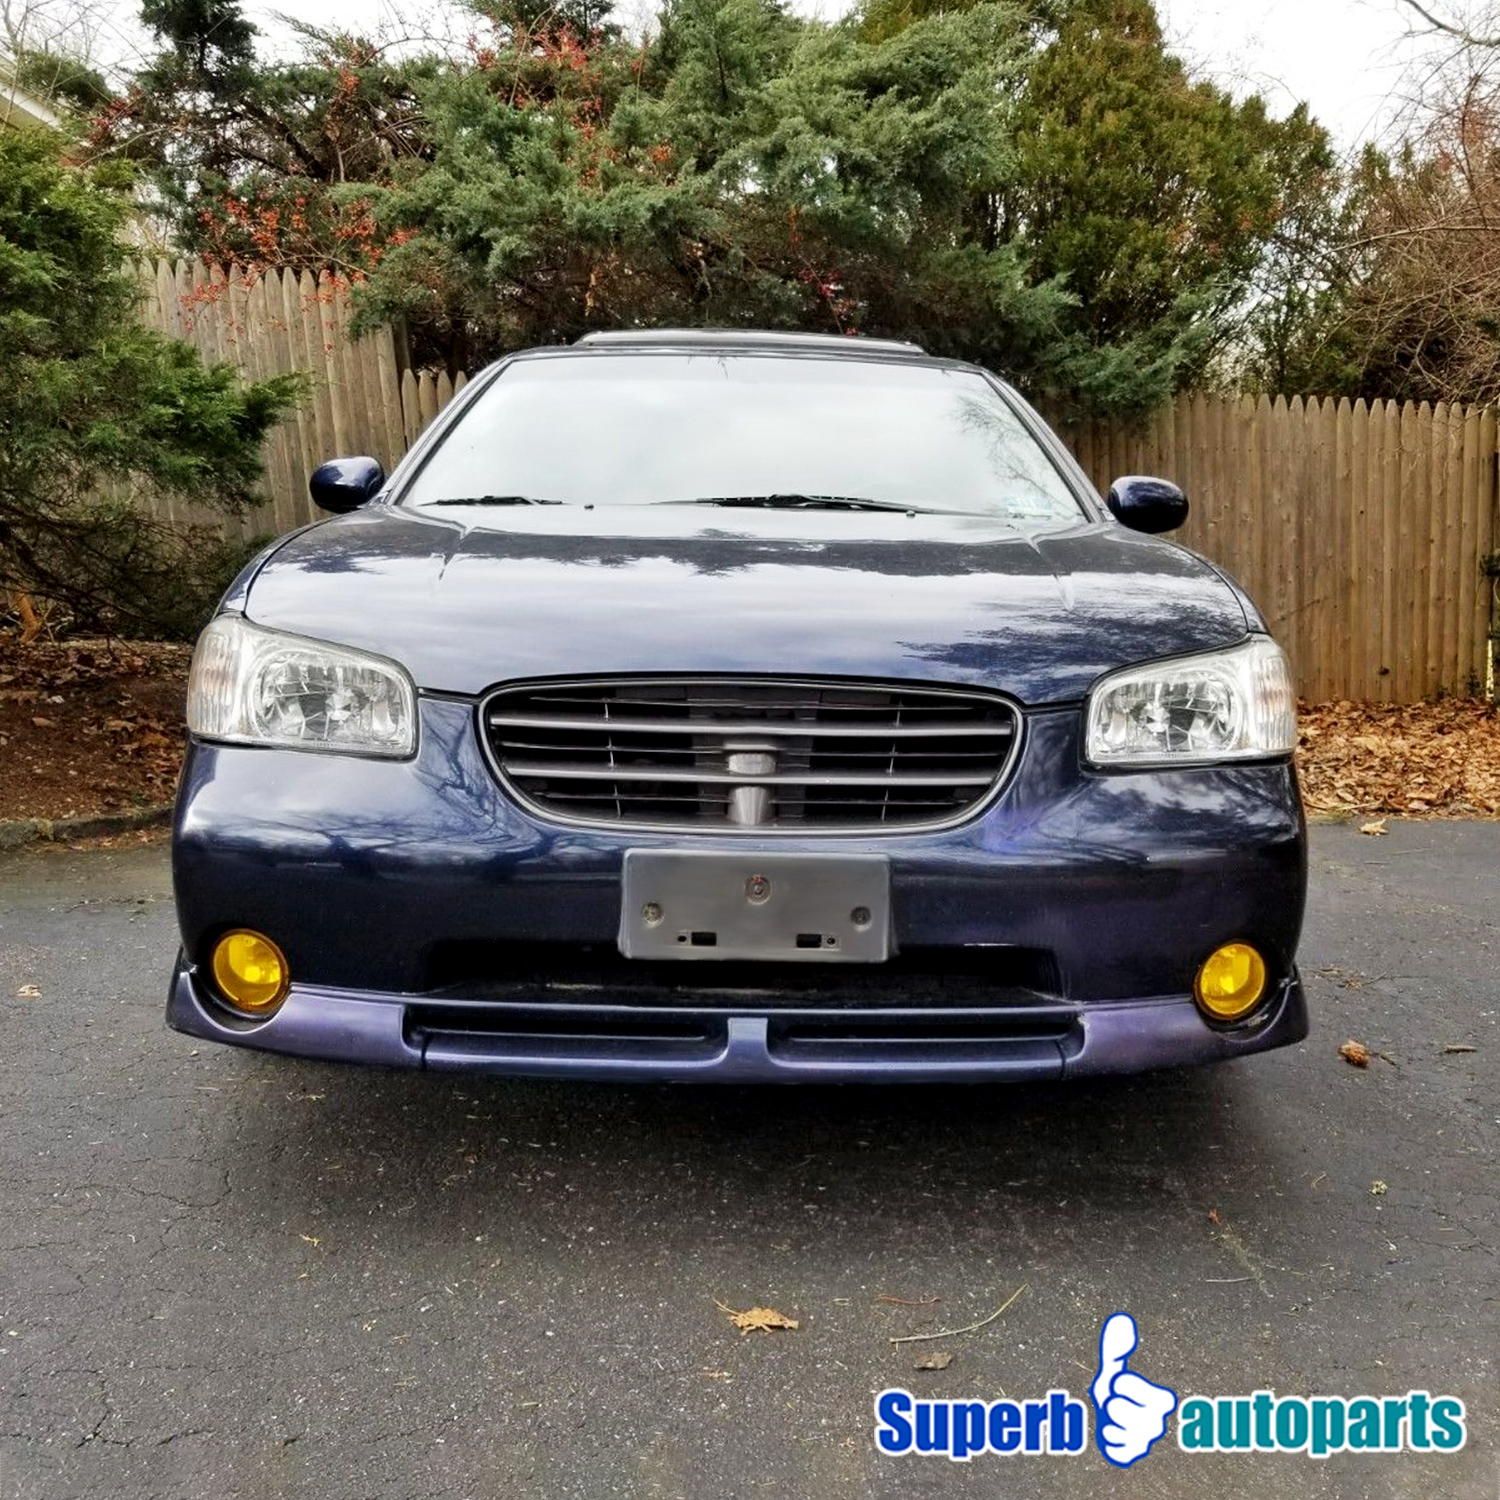 For 2000-2001 Nissan Maxima Sentra Frontier Yellow Lens ...